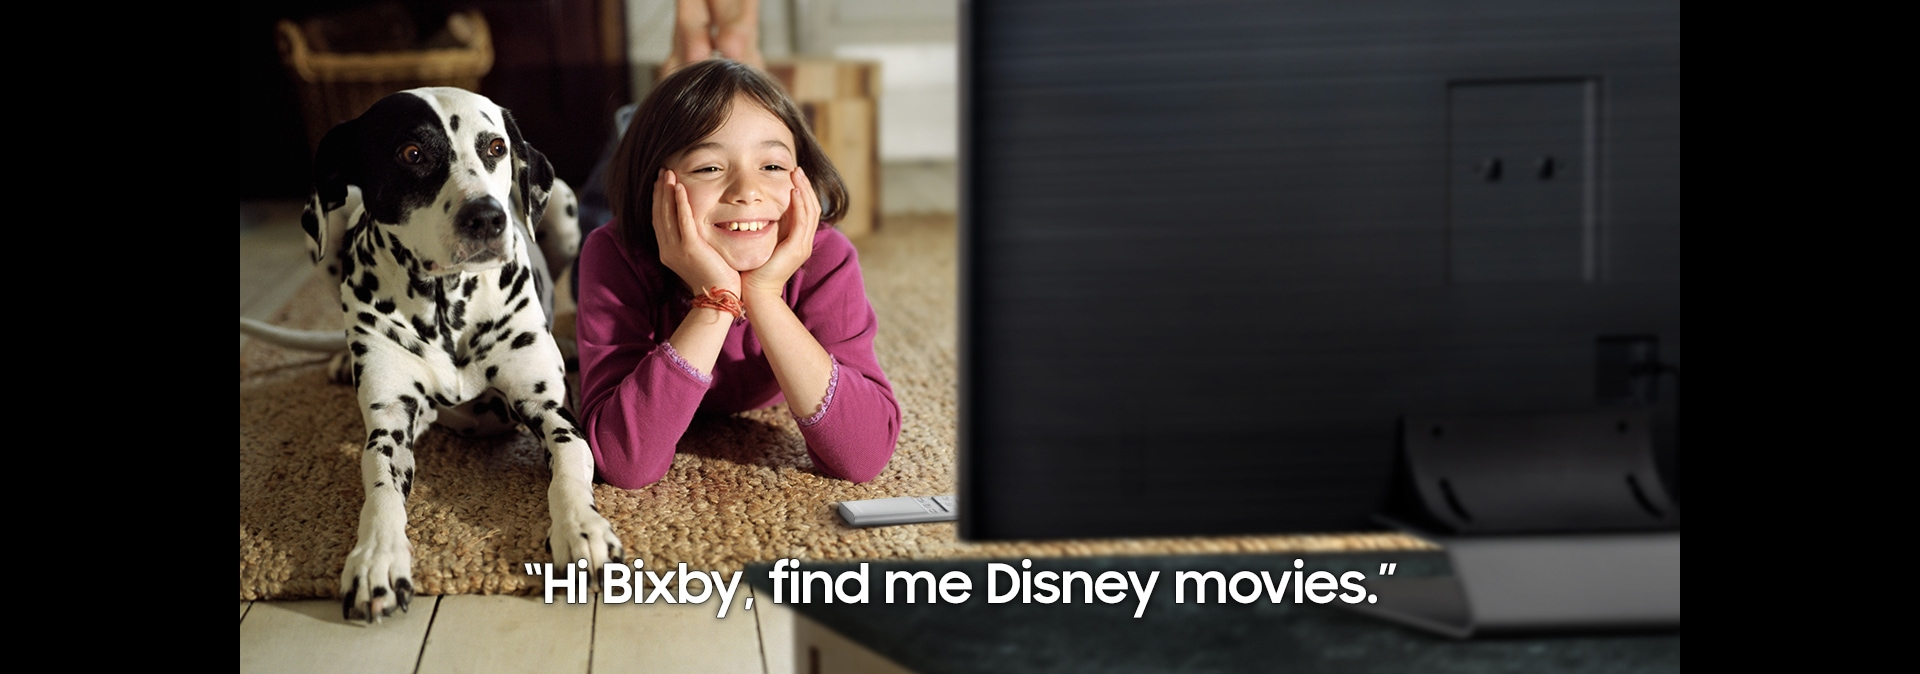 "Choose your type intro movie.  A child requesting ""Hi Bixby find me Disney movies"" to QLED."